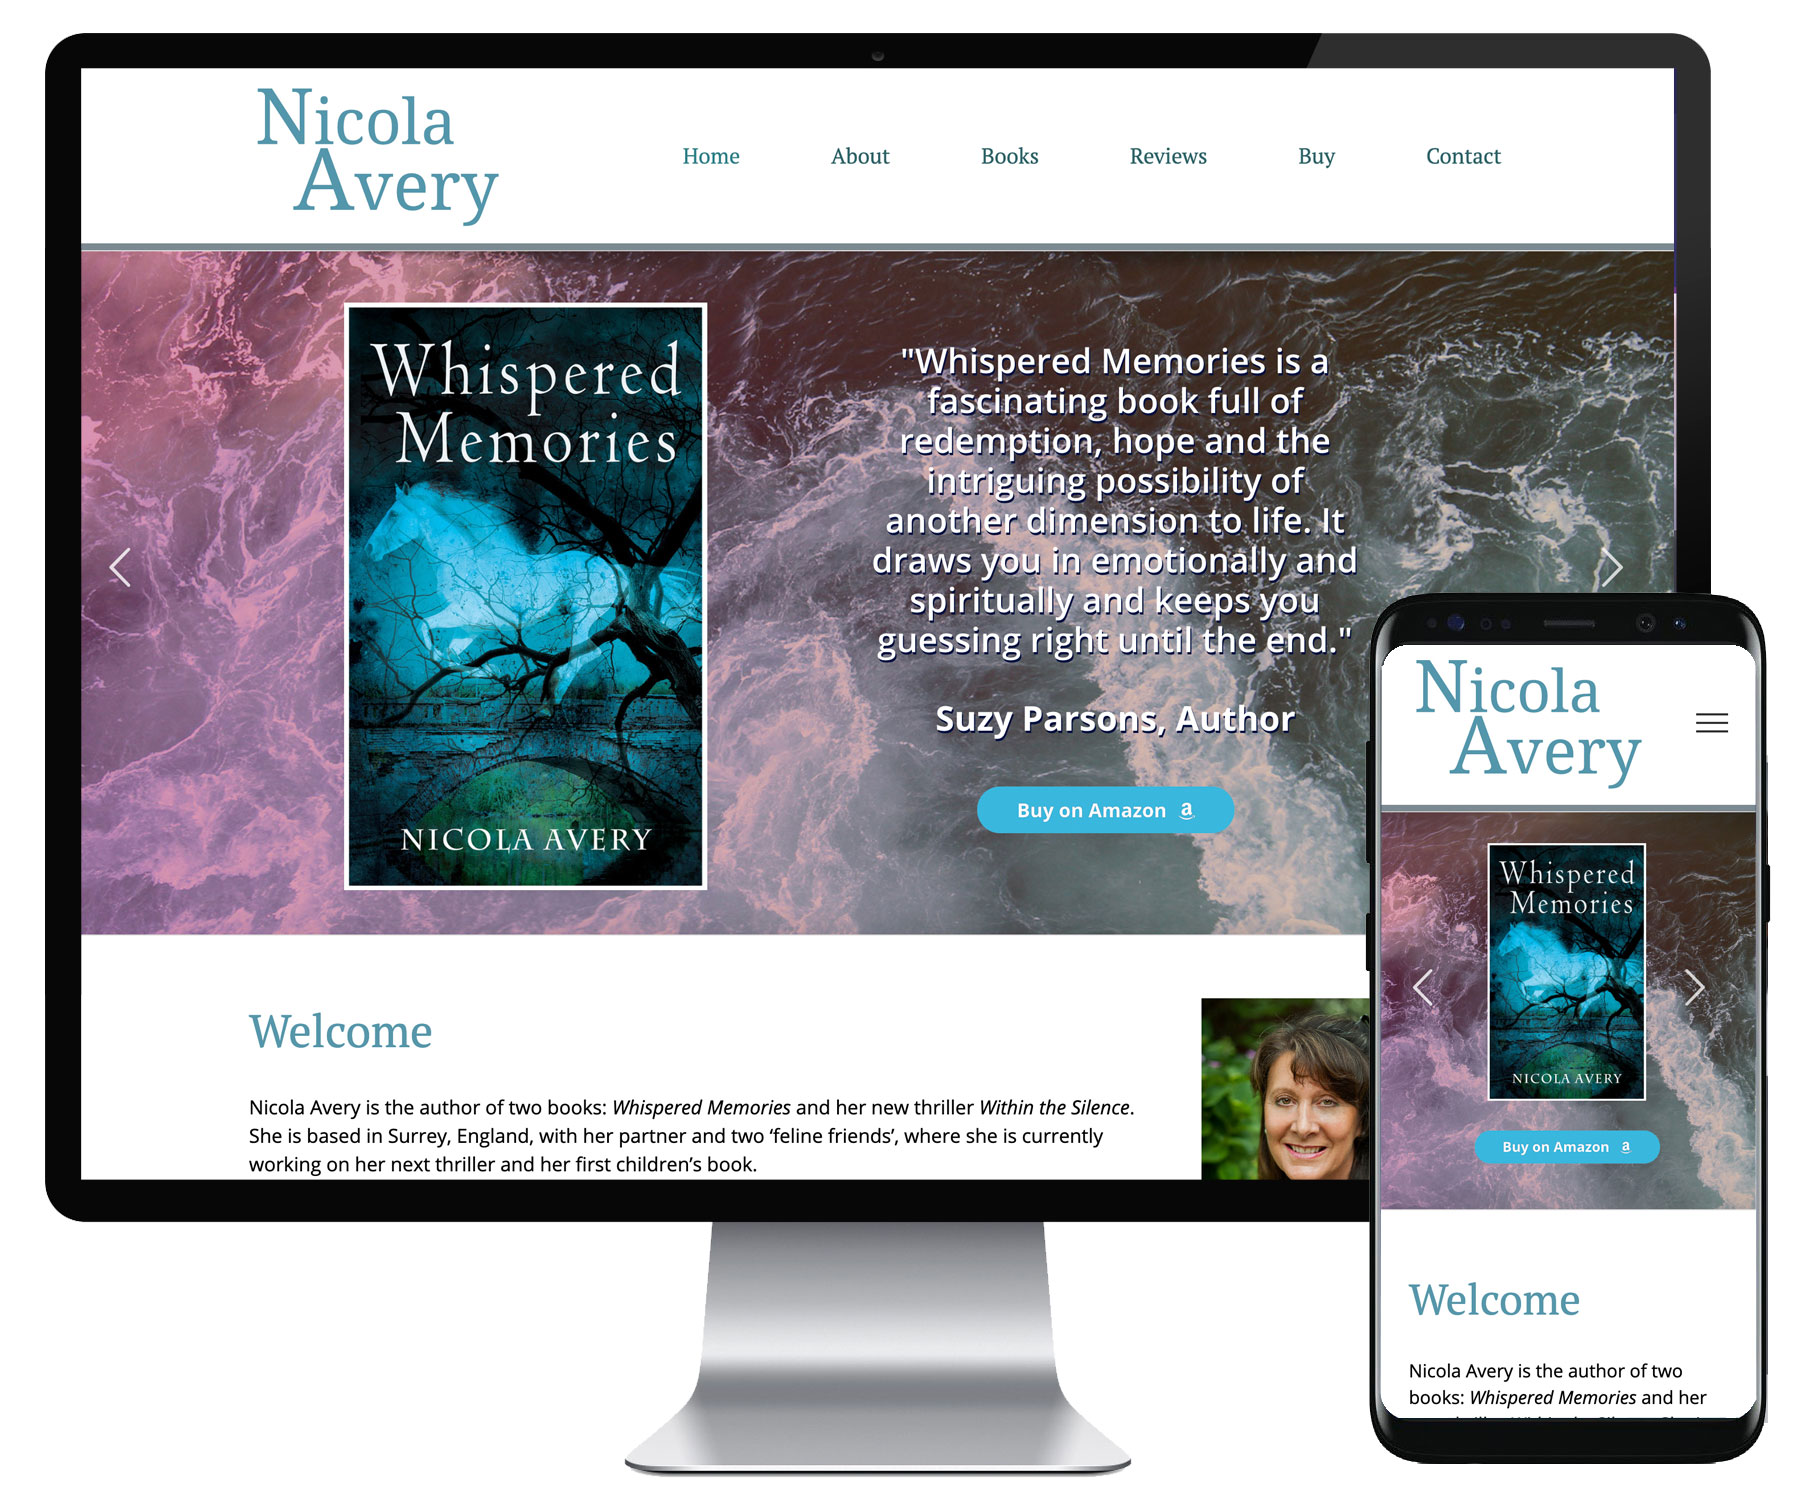 Nicola Avery website